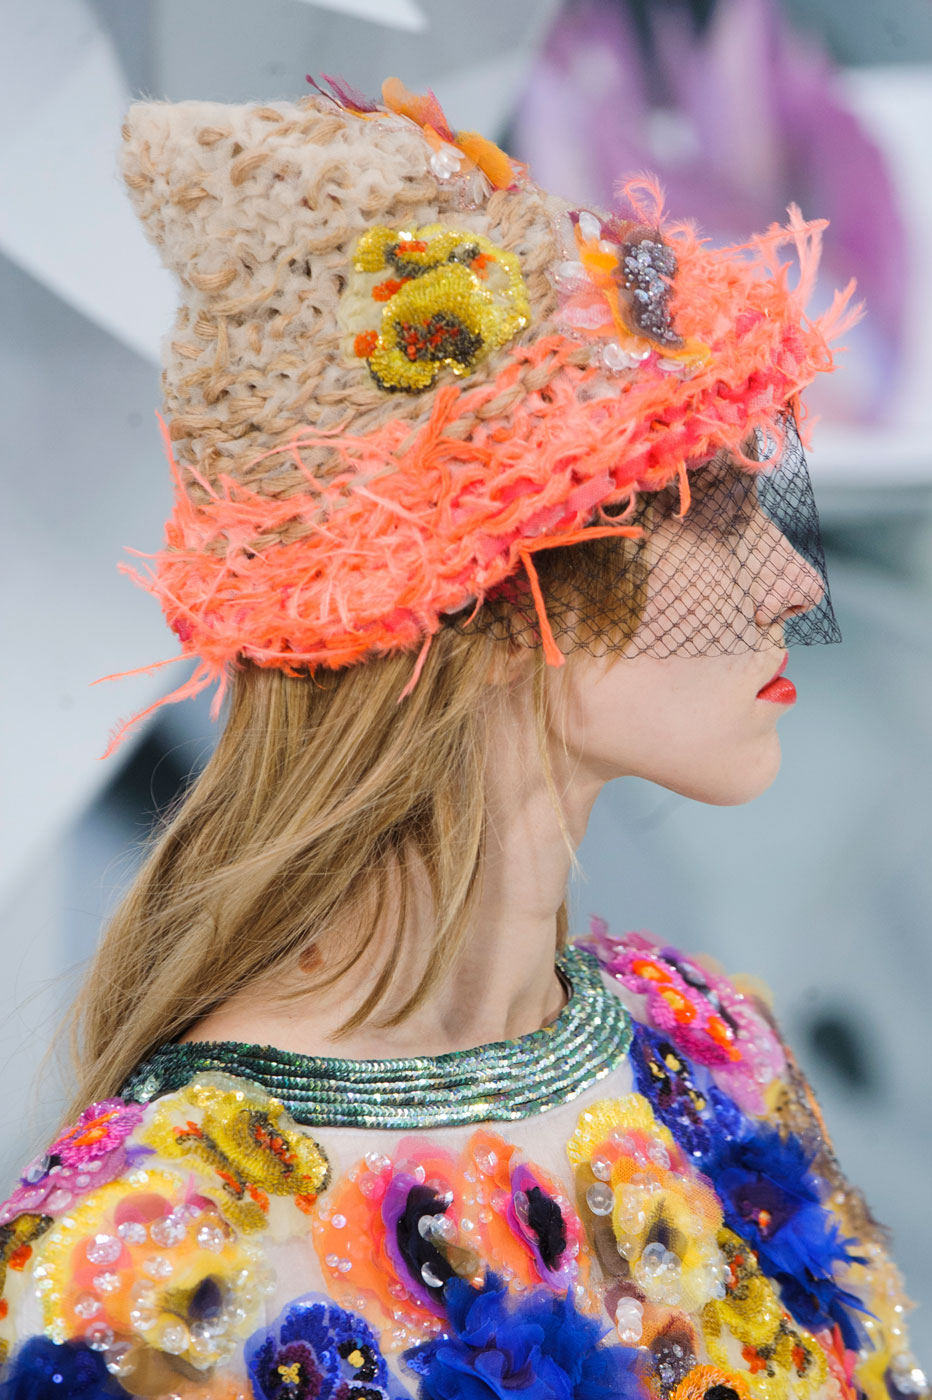 Chanel-fashion-runway-show-close-ups-haute-couture-paris-spring-summer-2015-the-impression-096